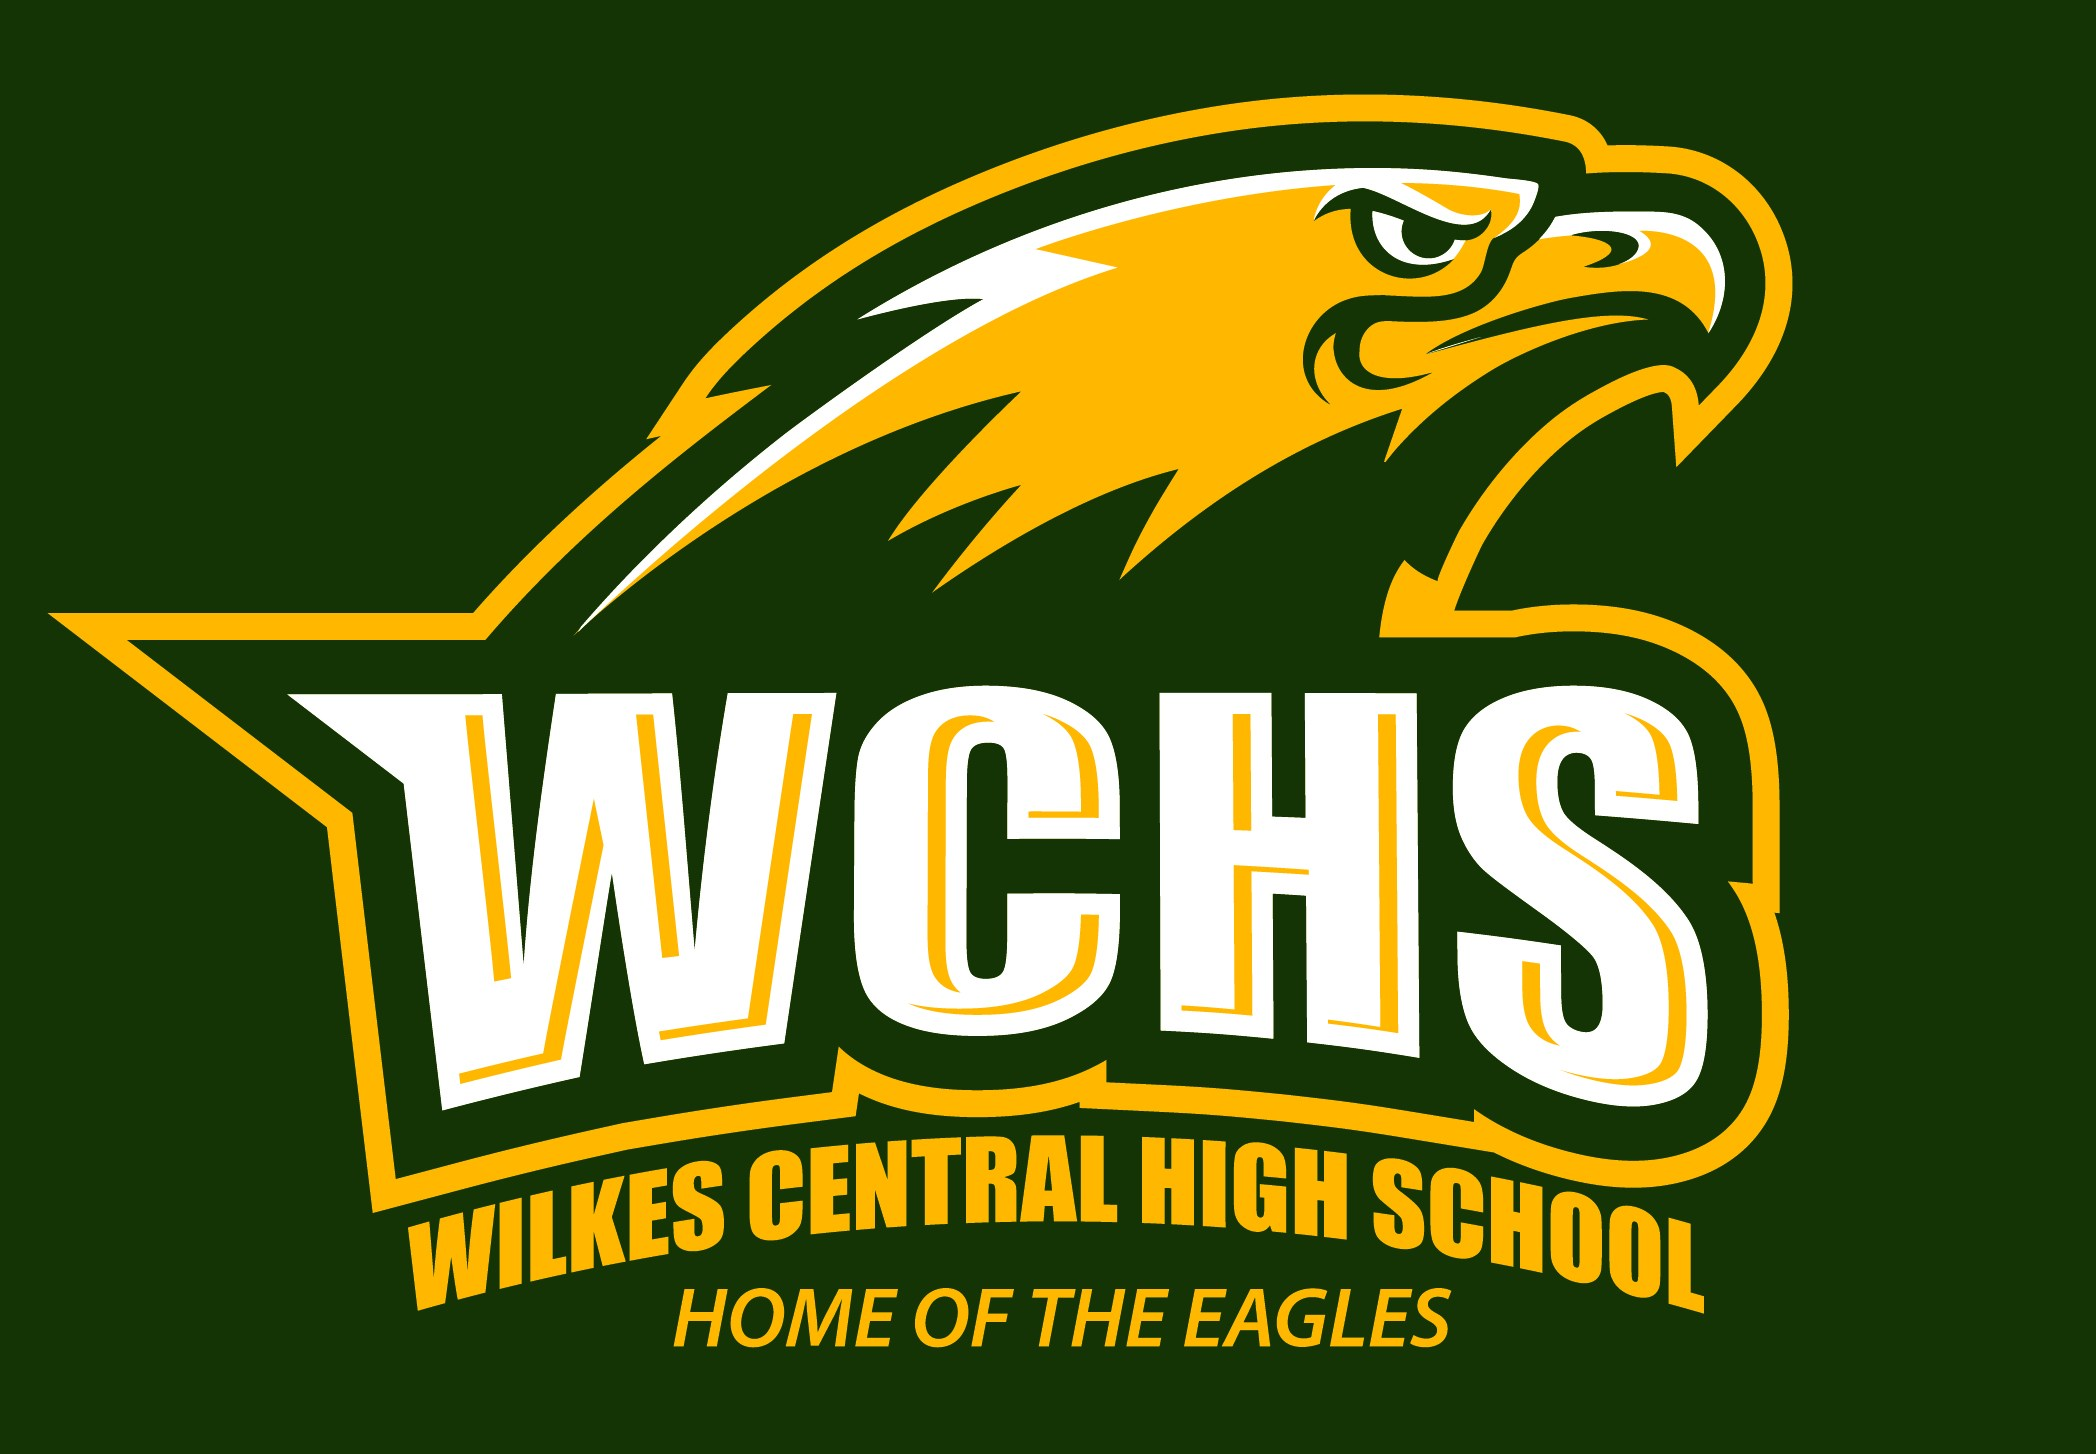 Welcome to Wilkes Central High School Image